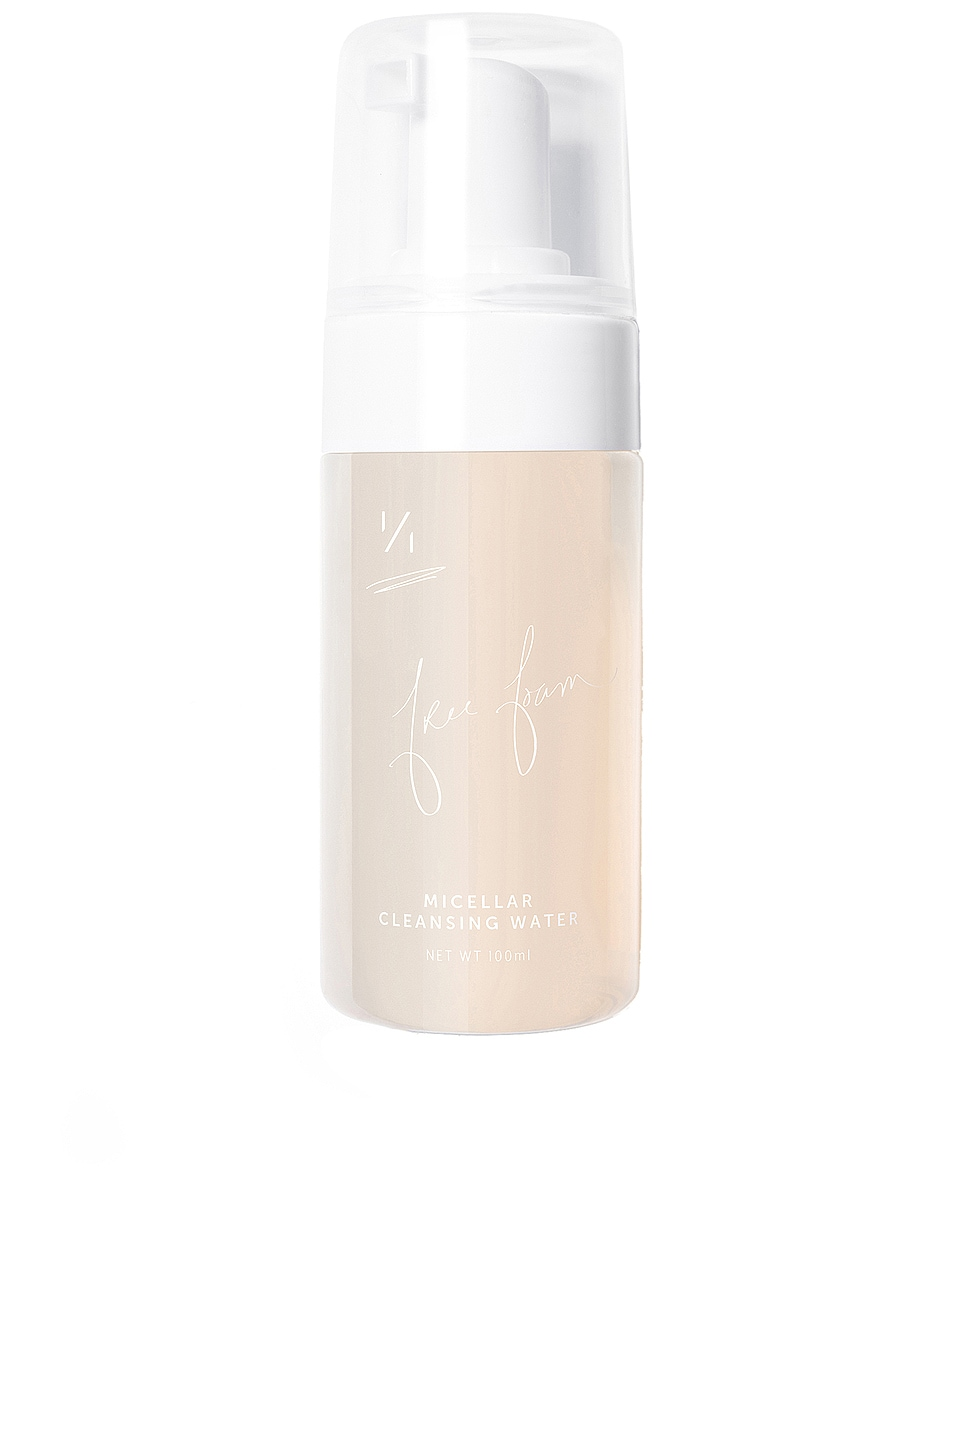 One Over One NETTOYANT FREE FOAM MICELLAR